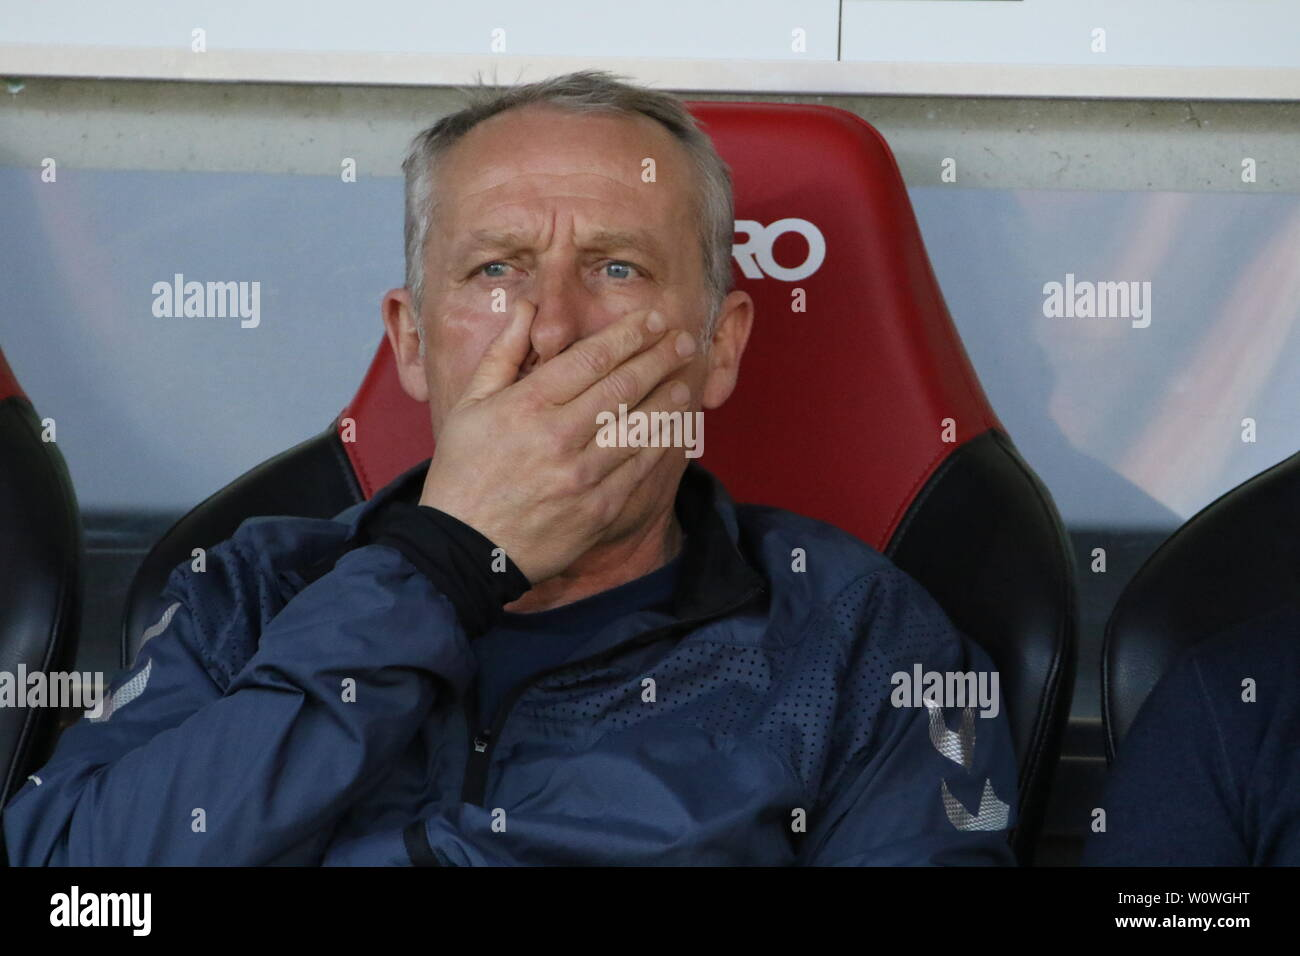 Oh Schreck lass nach: Trainer Christian Streich (Freiburg),   1. BL: 18-19: 27. Sptg. -  SC Freiburg vs. FC Bayern München  DFL REGULATIONS PROHIBIT ANY USE OF PHOTOGRAPHS AS IMAGE SEQUENCES AND/OR QUASI-VIDEO  Foto: Joachim Hahne/johapress - Stock Image